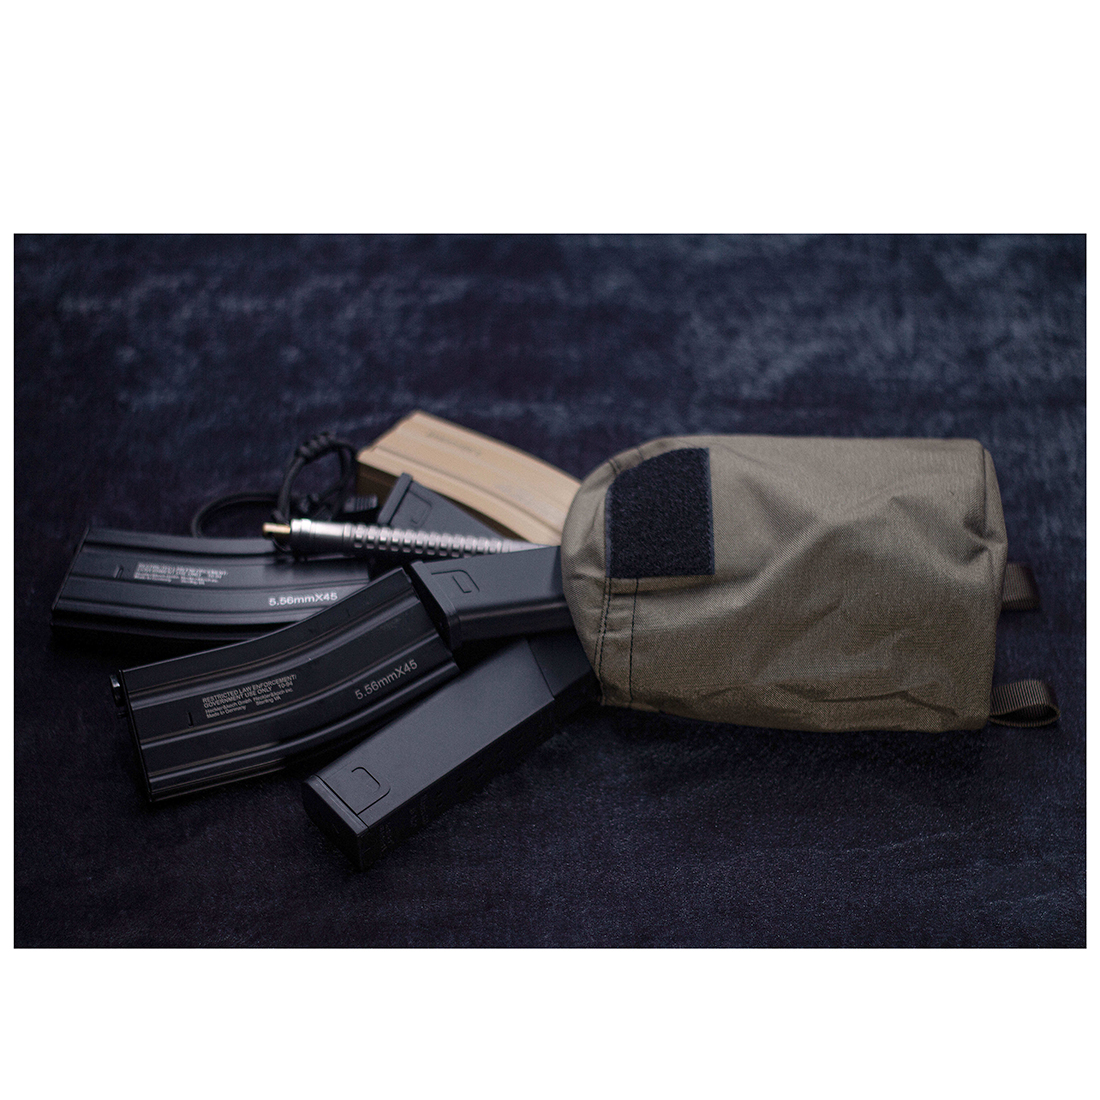 BF Orion New Arriving Tactical Hunting Dump Pouch Foldable Magazine Storage Bag Recycle Pouch For Outdoor Airsoft- RG